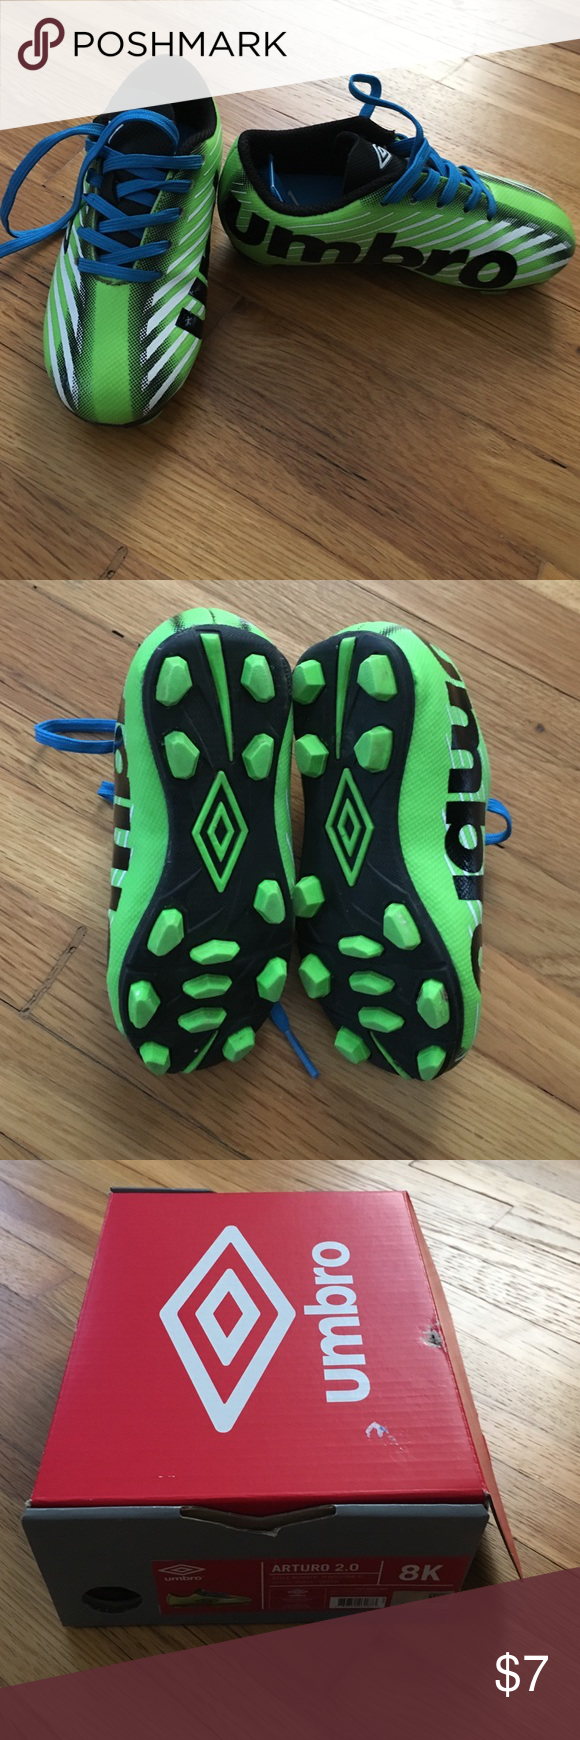 Toddler Boys Soccer Cleats Toddler boys soccer cleats. Umbro. Size 8. Worn  once. Comes in box. Umbro Shoes 6d9c4bdca2f2